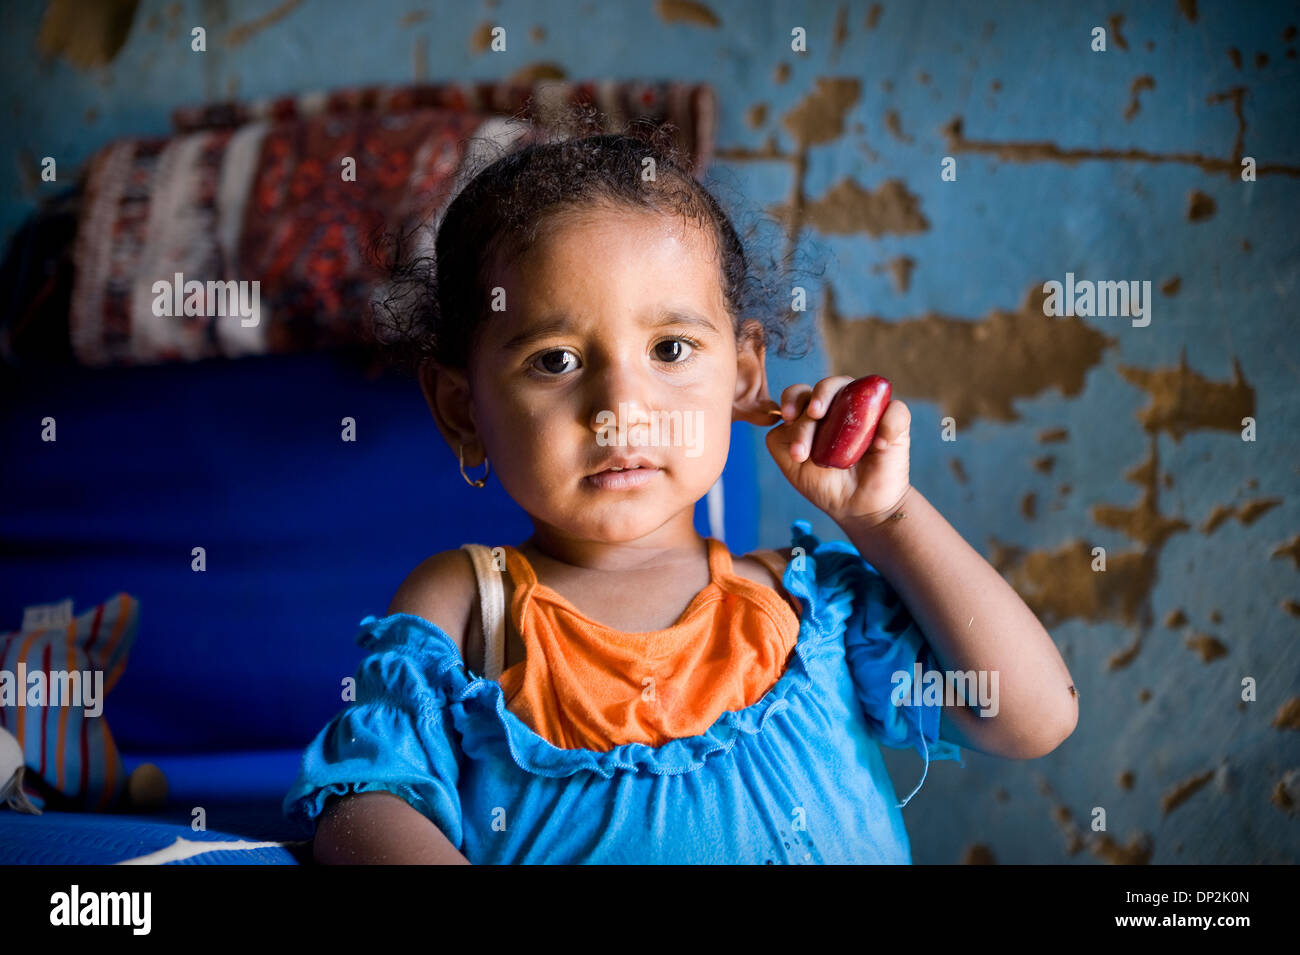 EGYPT, BELBEIS: In rural areas living conditions often are very simple and poor. - Stock Image